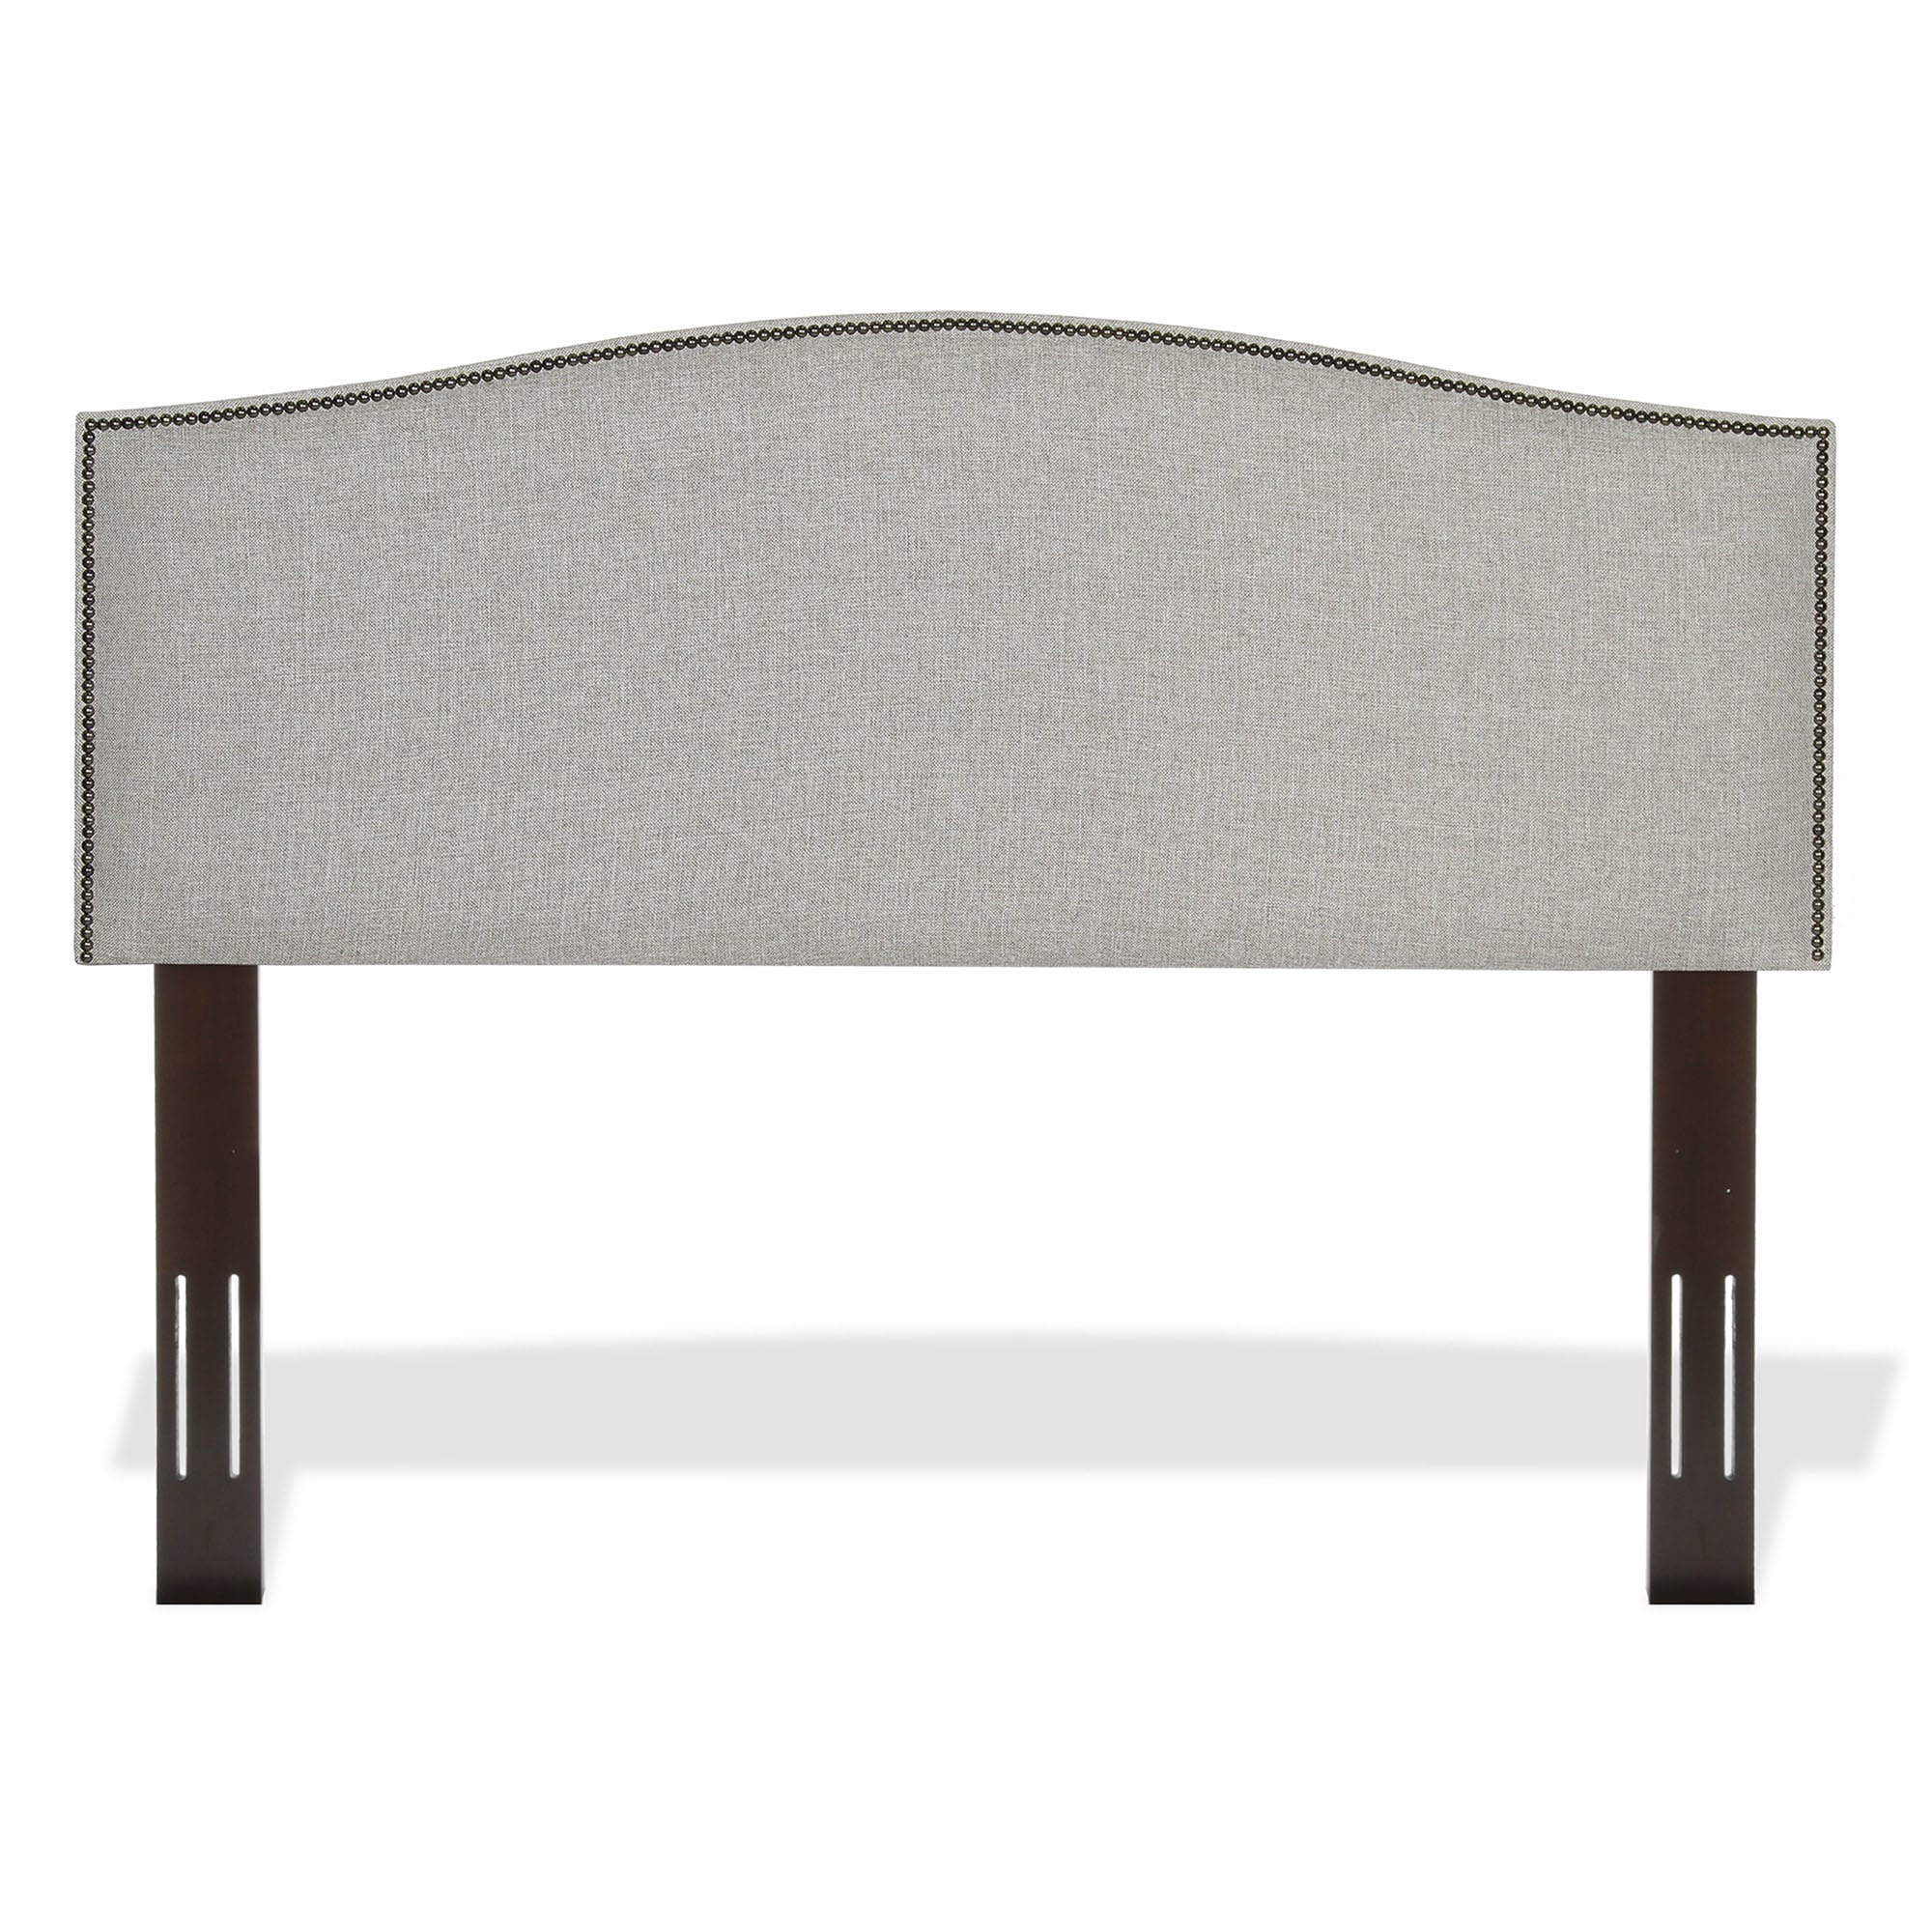 hight resolution of leggett platt carlisle upholstered headboard panel w solid wood adjustable frame